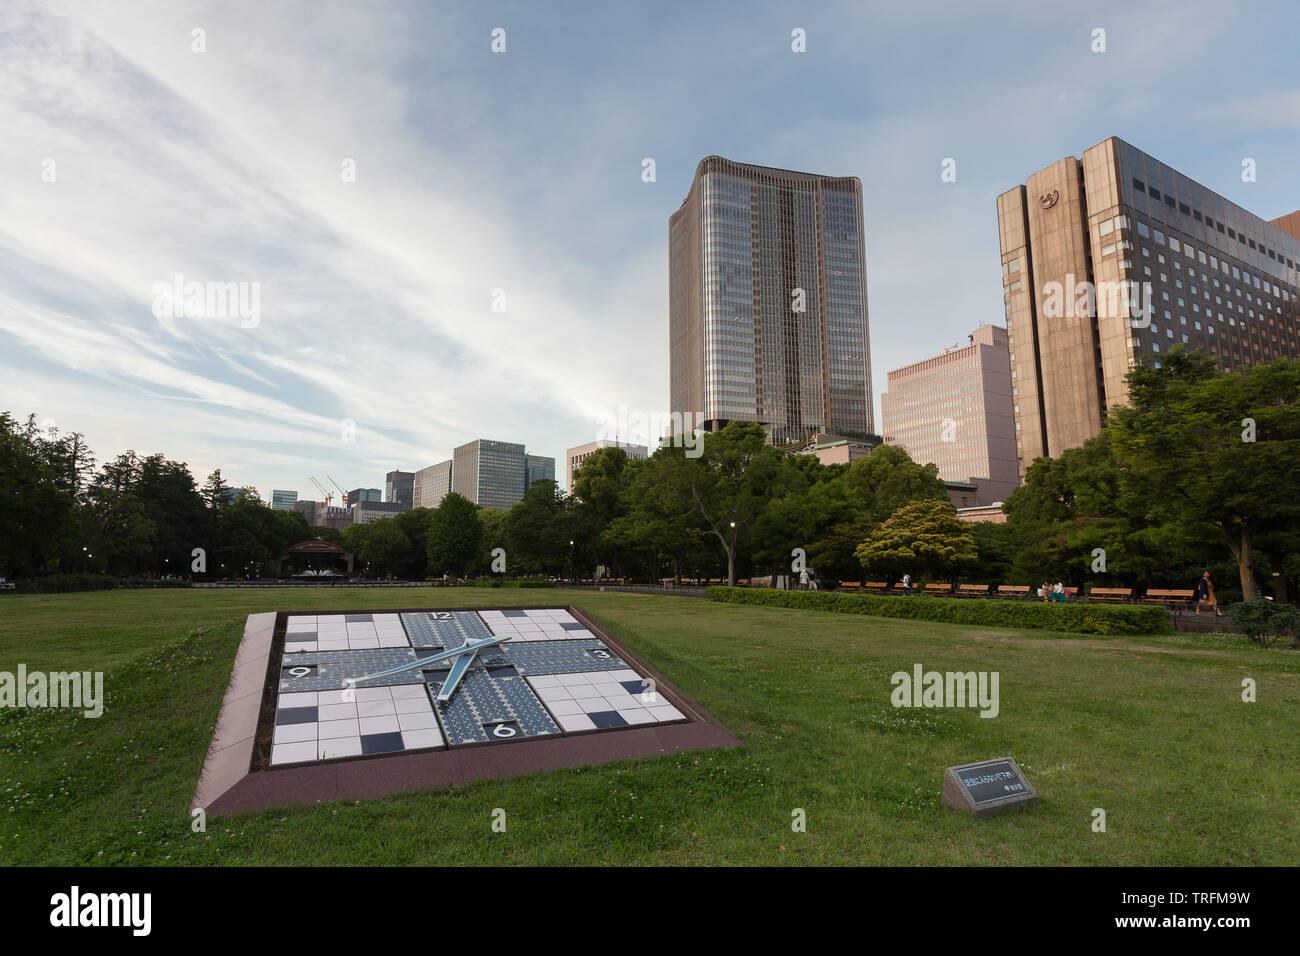 A solar-powered clock in Hibiya Park, With the towers  of Tokyo Midtown-Hibiya and The Imperial Hotel behind Hibiya, Tokyo, Japan. Monday June 3rd 201 - Stock Image